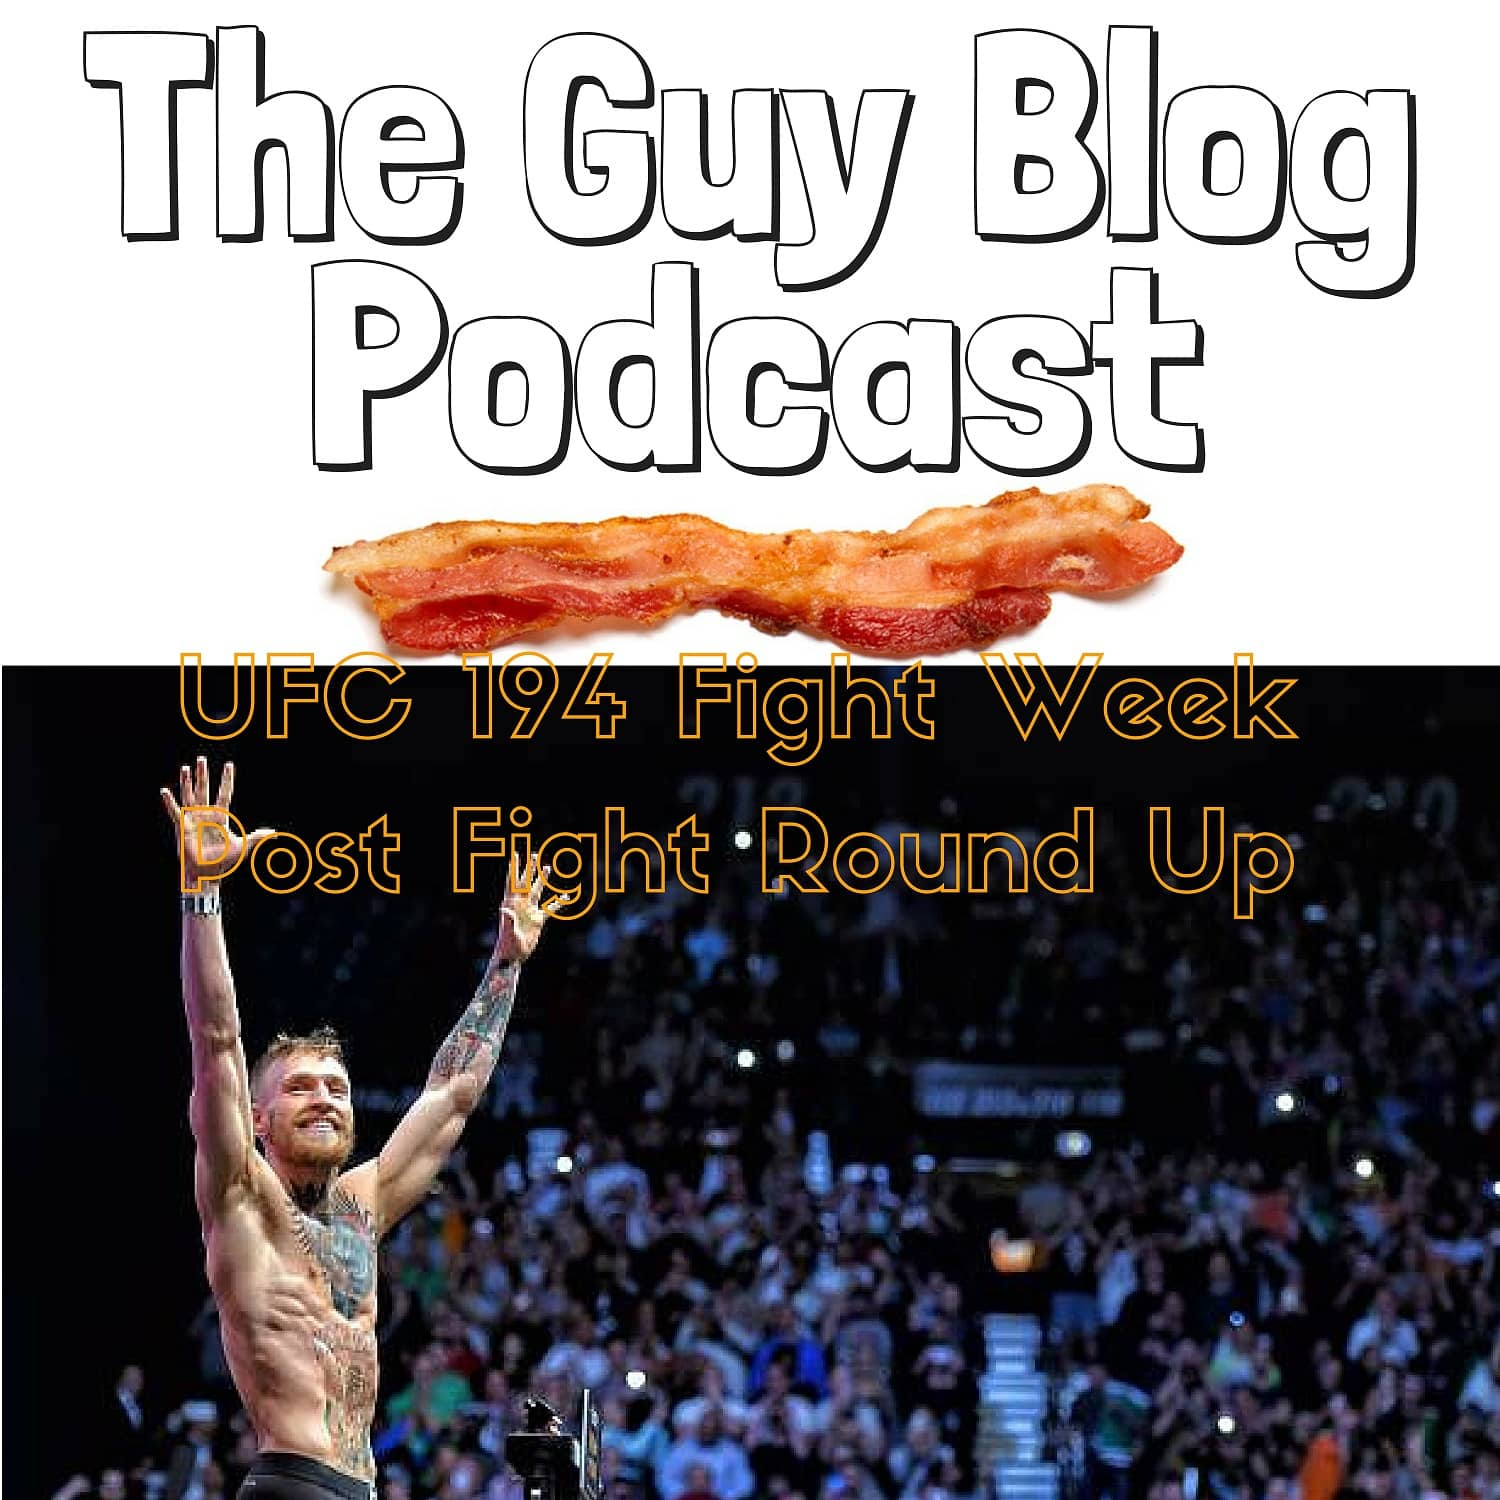 UFC 194 Fight Week Post Fight Round Up – The Guy Blog Podcast